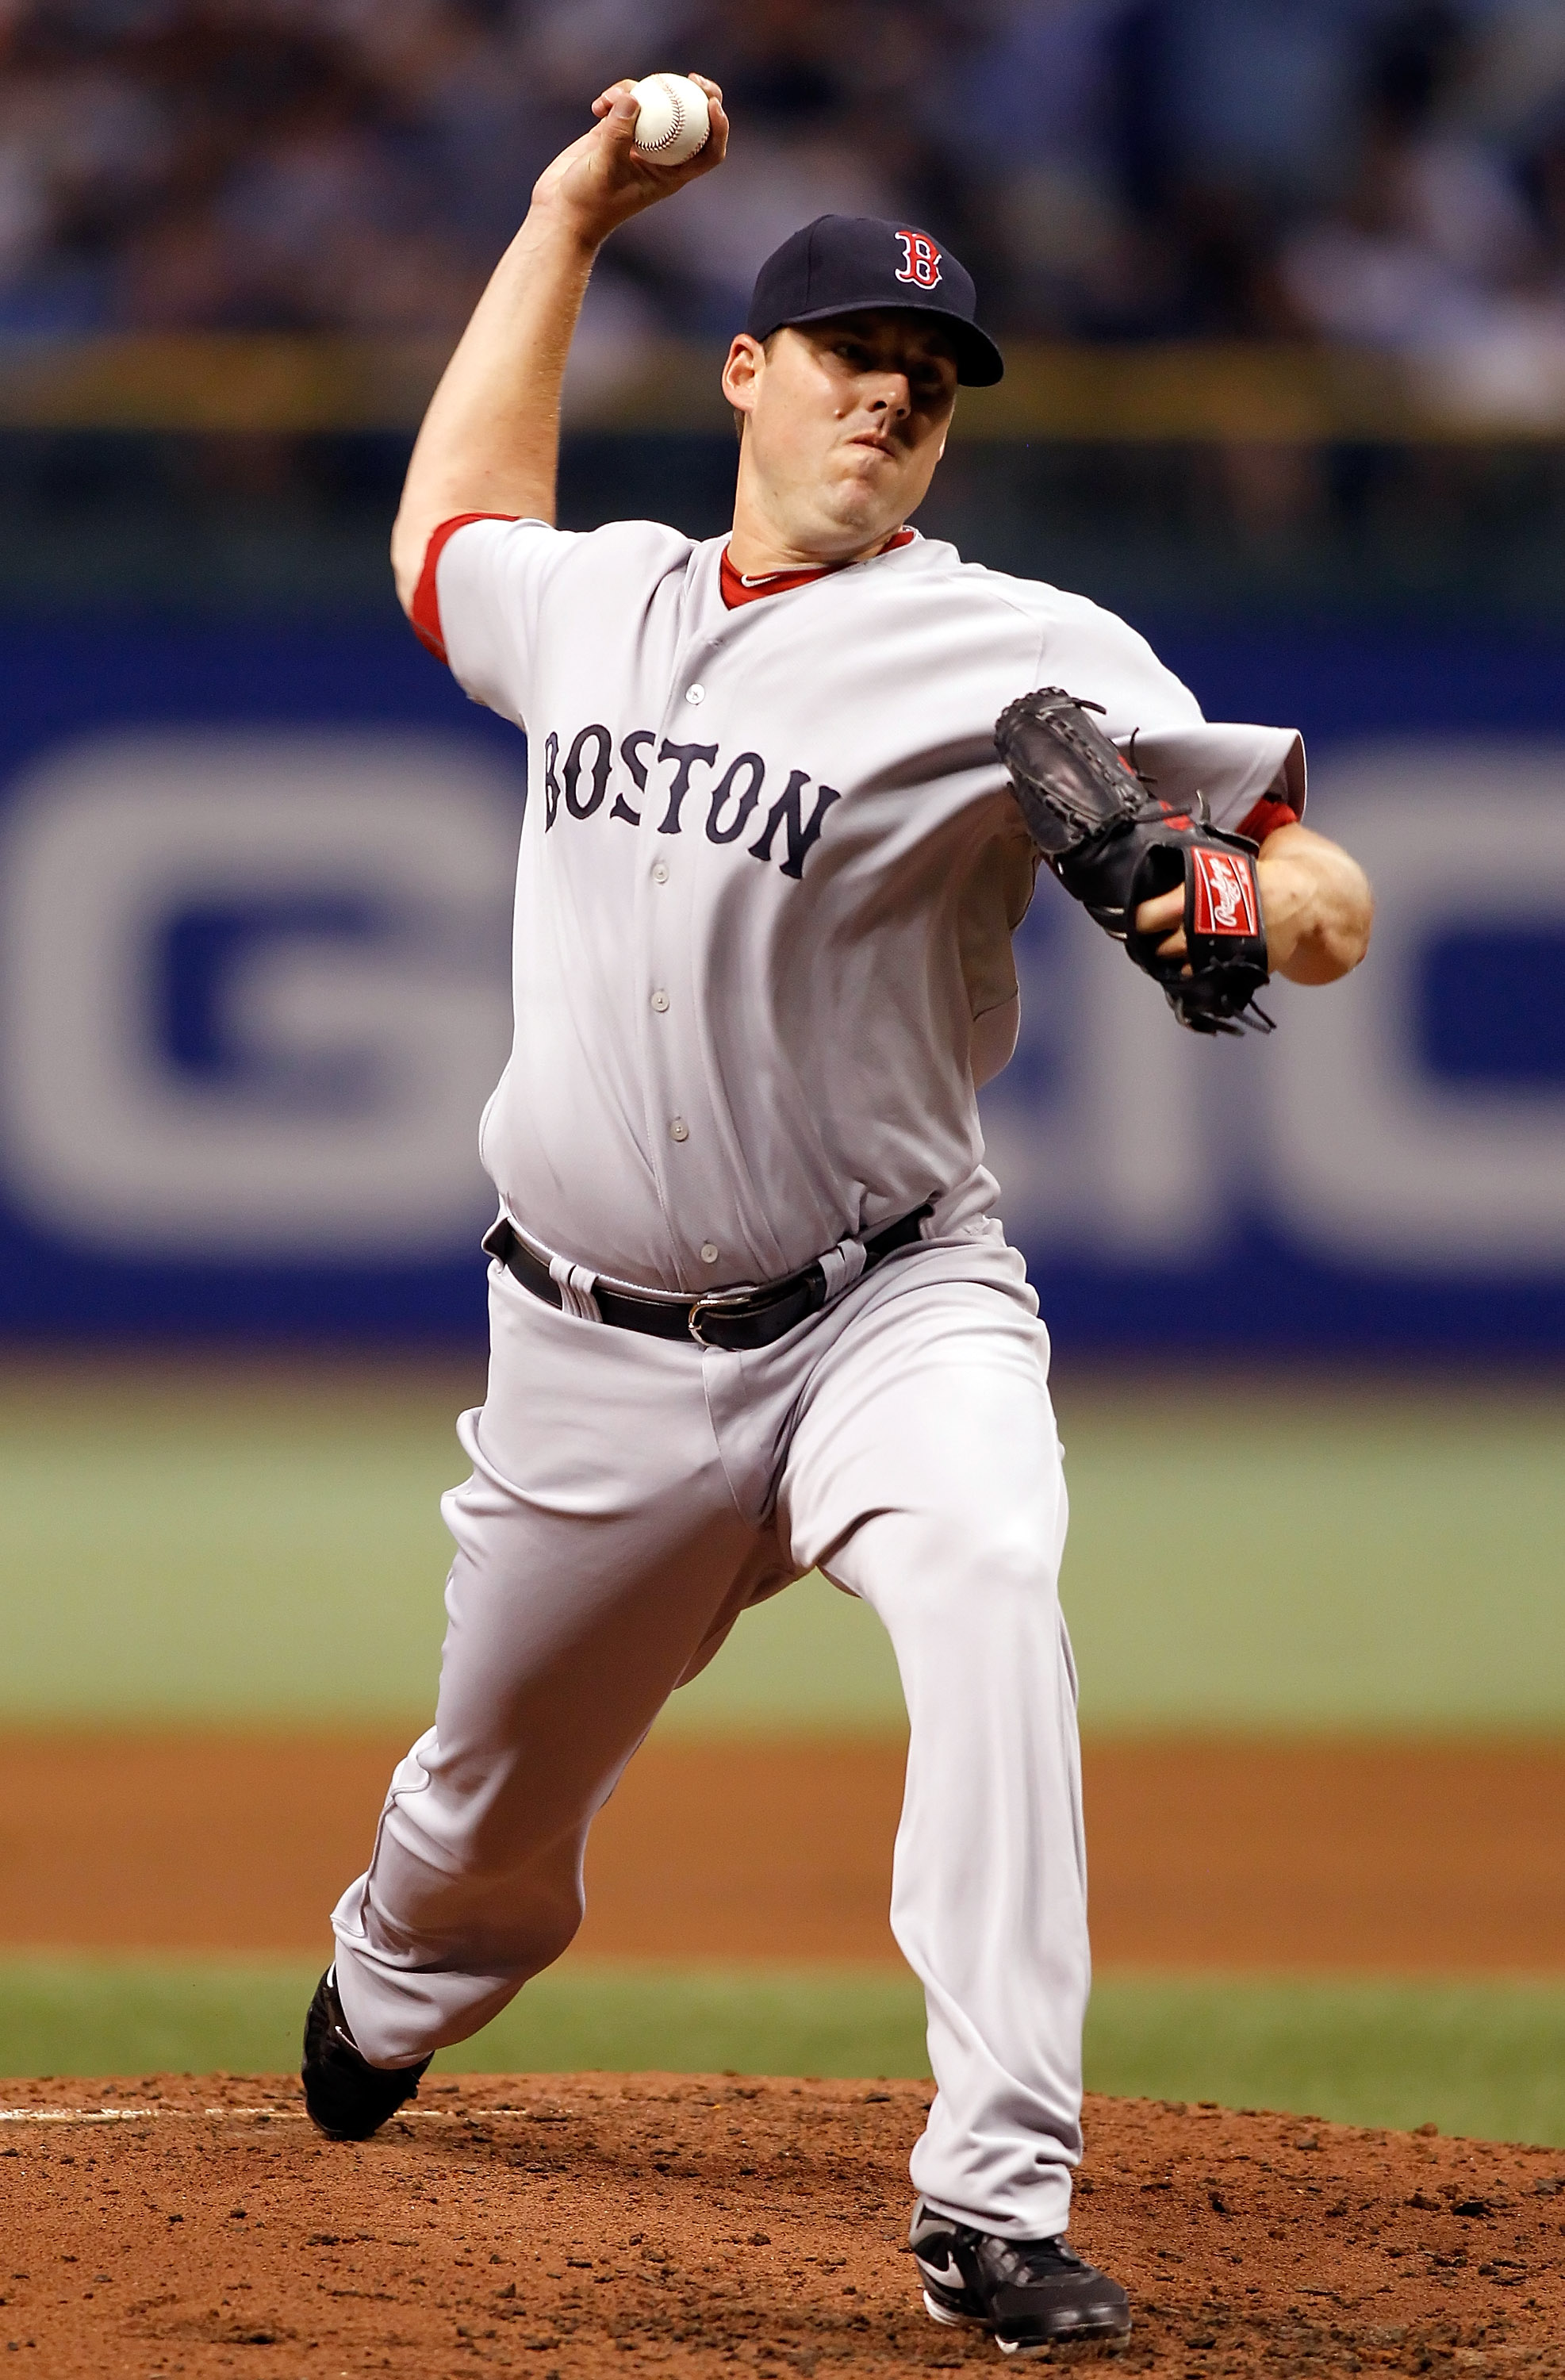 ST. PETERSBURG - AUGUST 29:  Pitcher John Lackey #40 of the Boston Red Sox pitches against the Tampa Bay Rays during the game at Tropicana Field on August 29, 2010 in St. Petersburg, Florida.  (Photo by J. Meric/Getty Images)